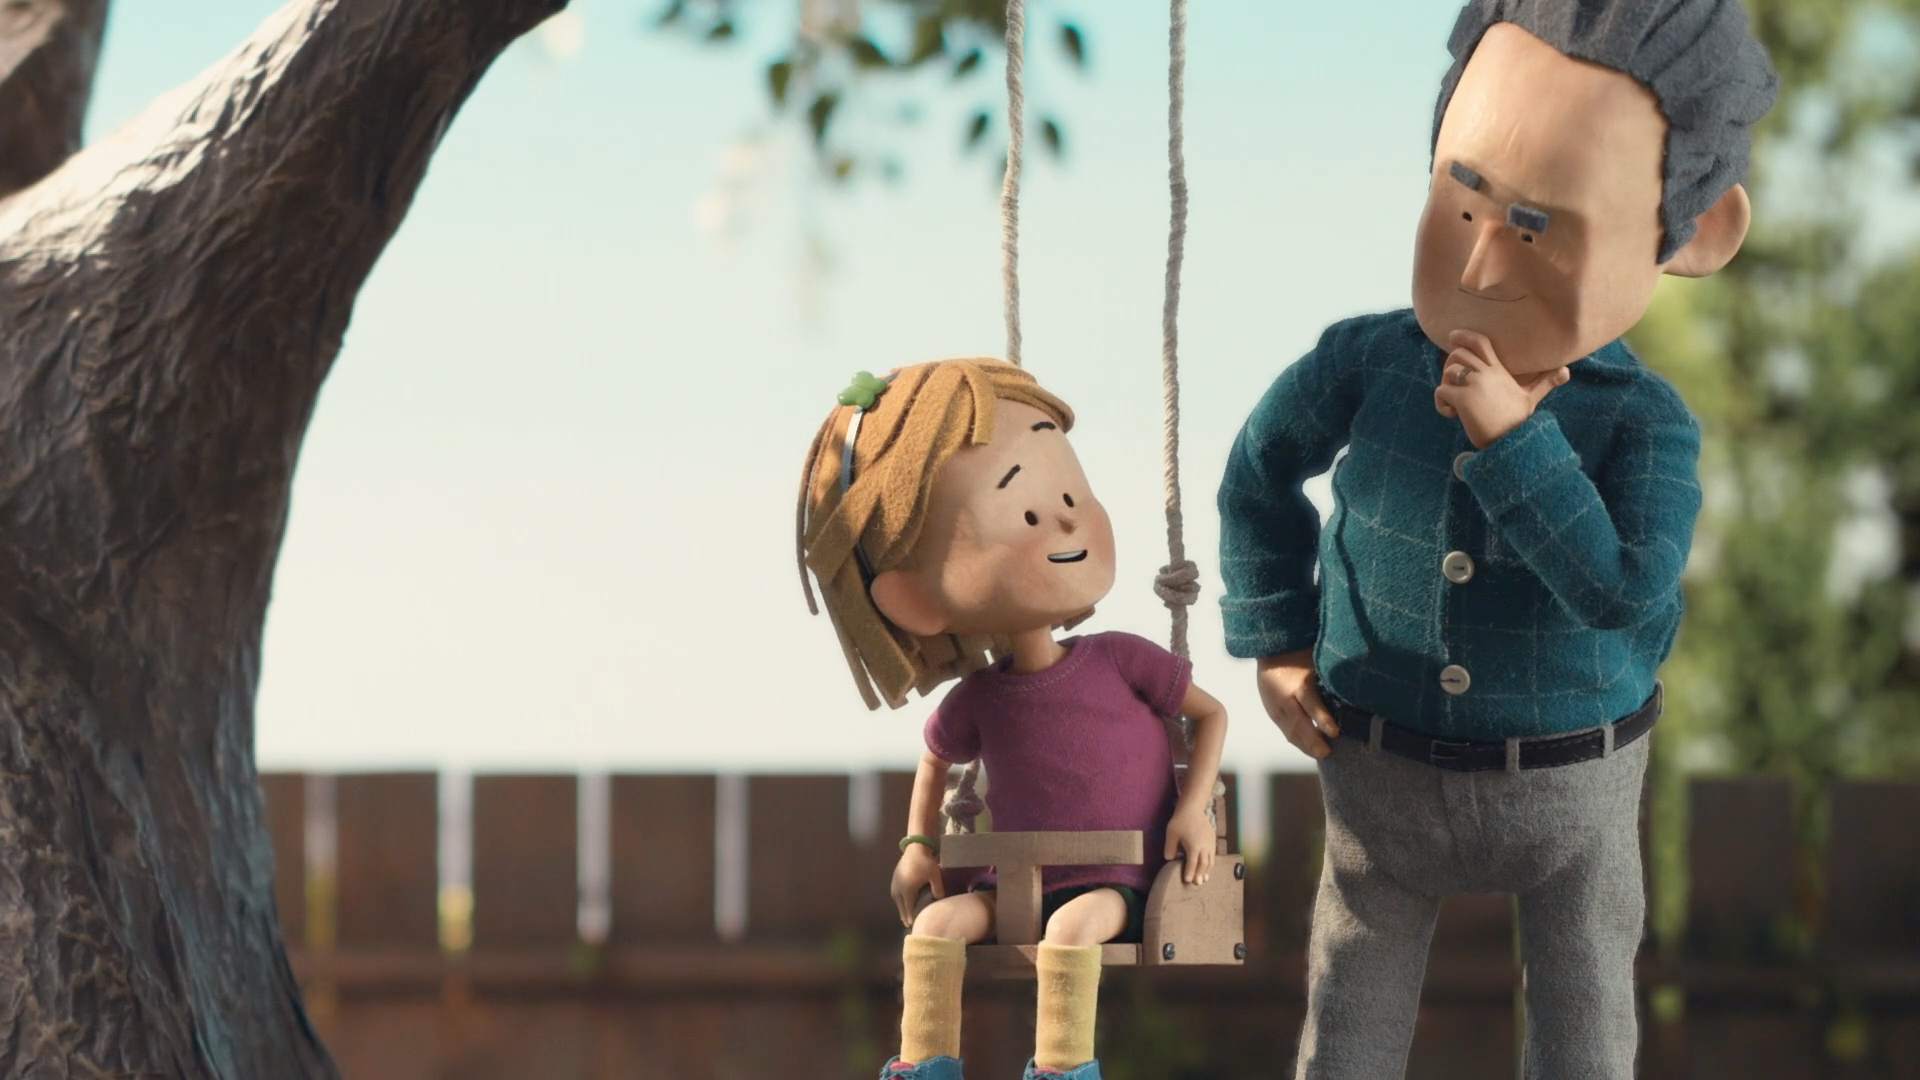 This Emotional Animation Shows Us The Cost of Dangerous Driving